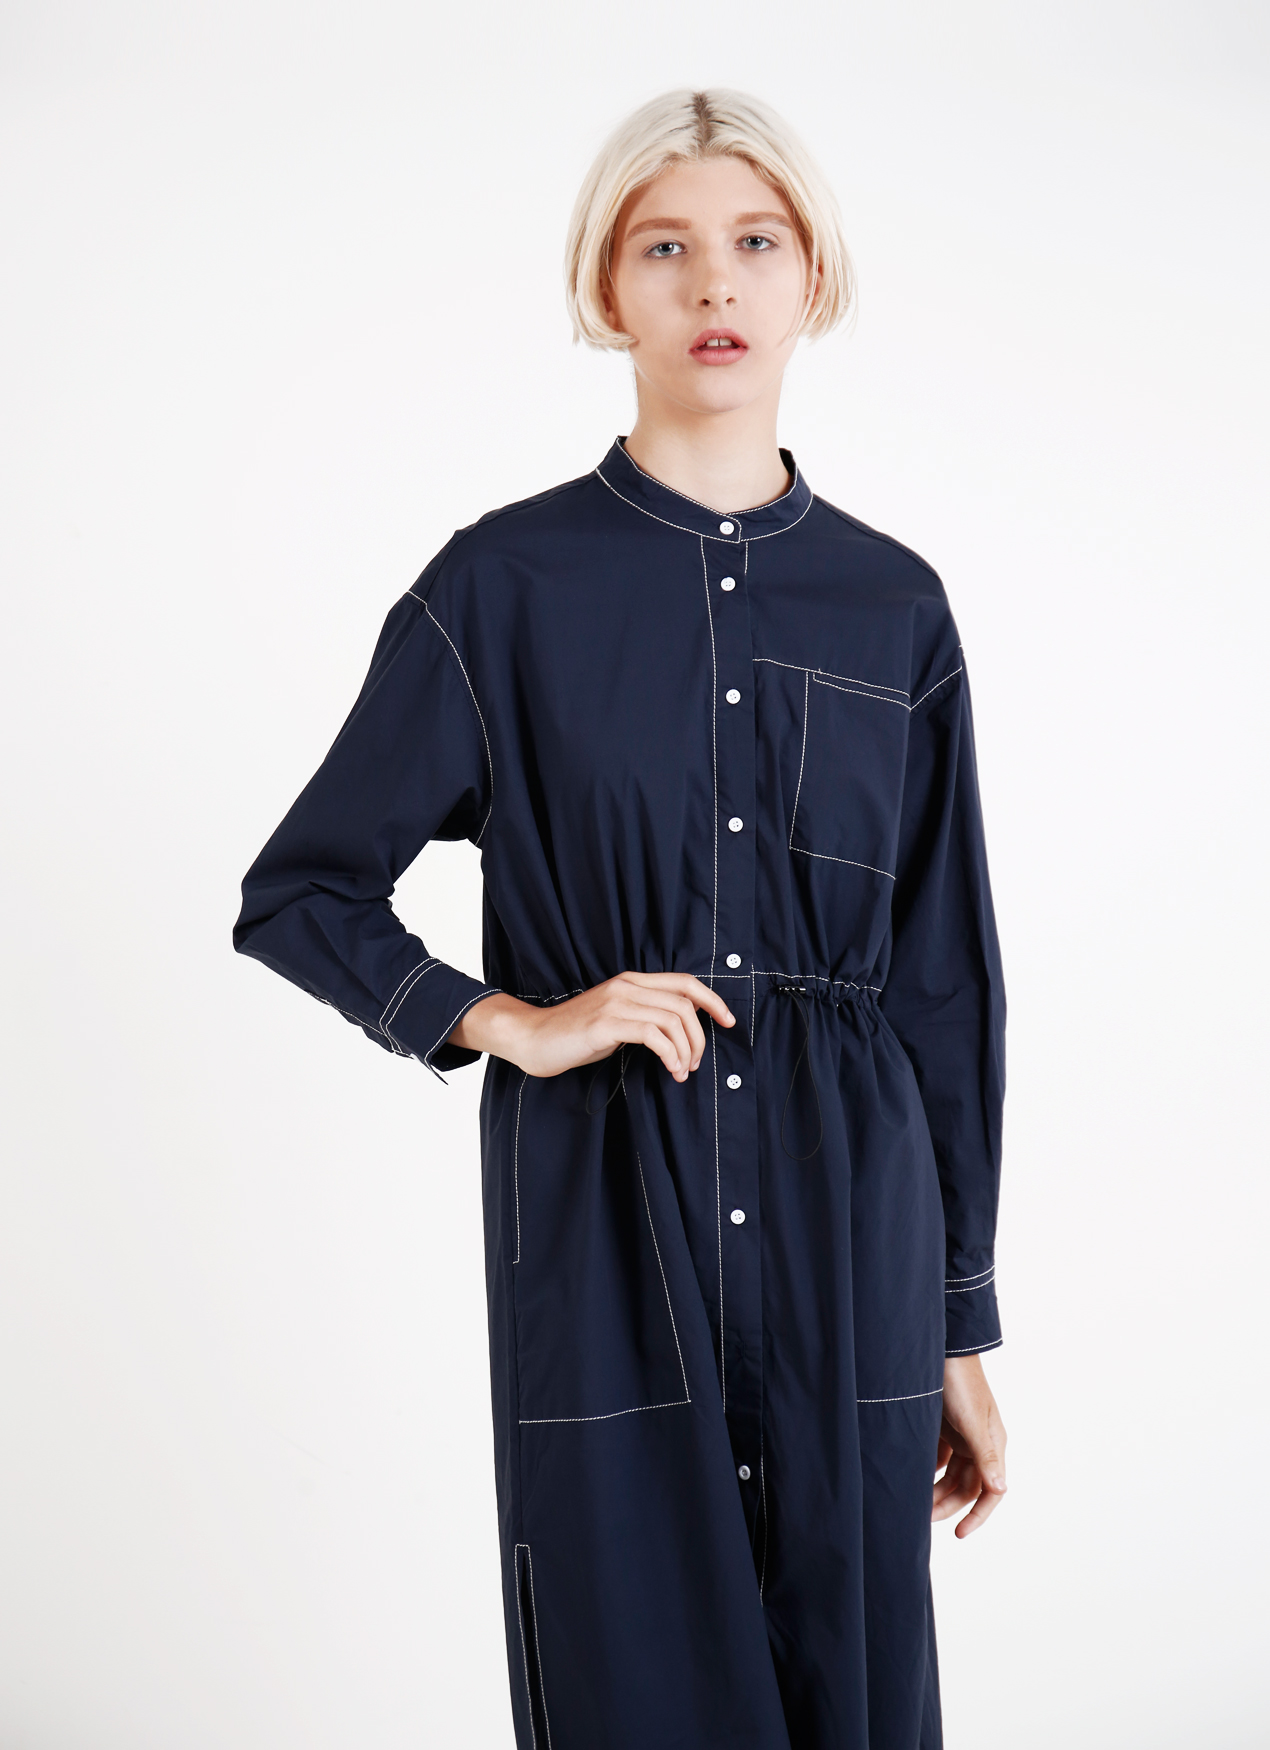 BOWN Mona Dress - Deep blue